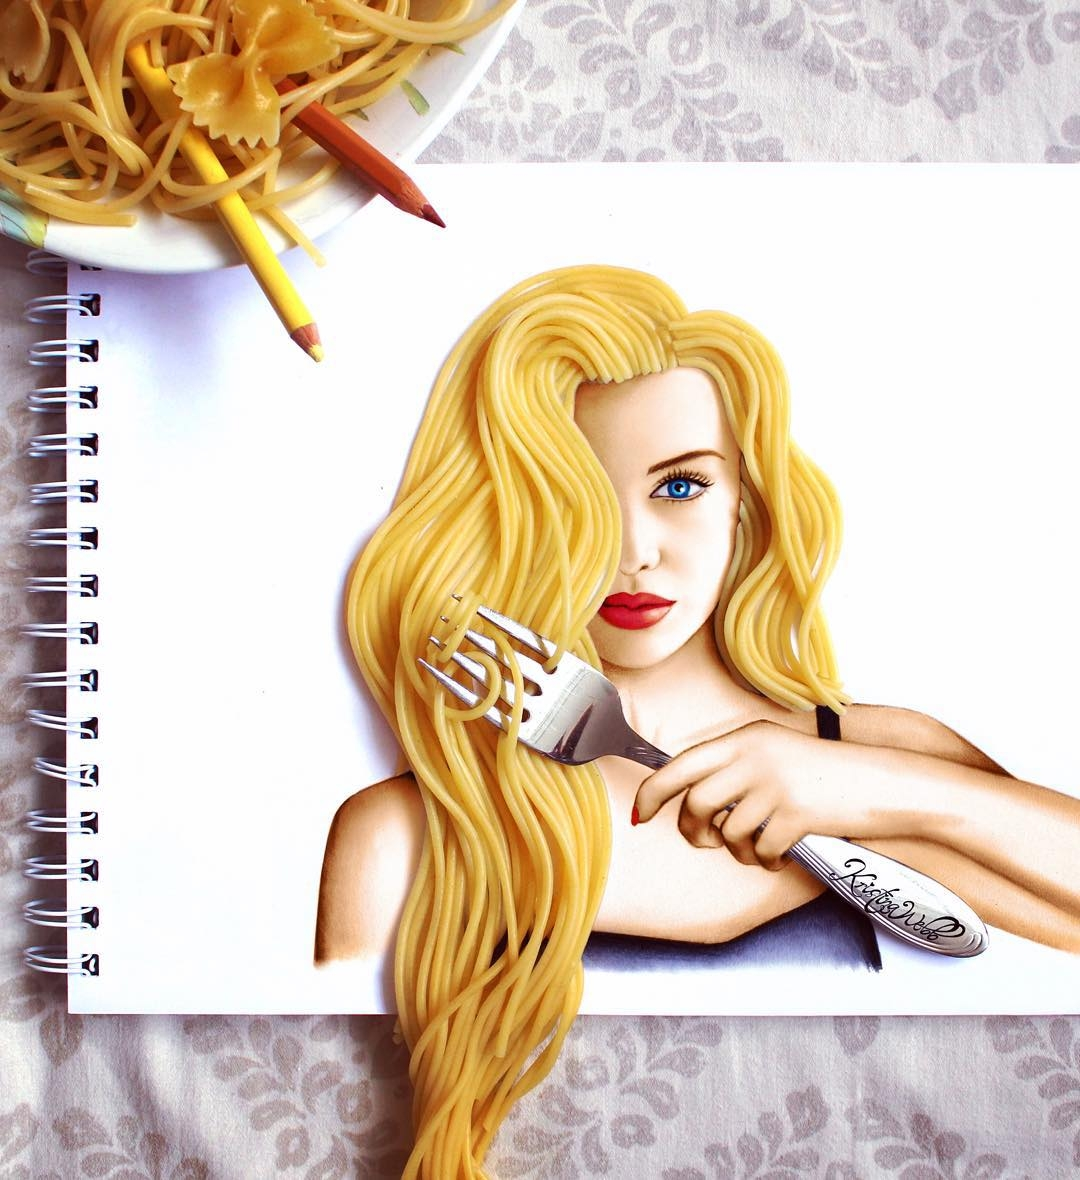 02-Spaghetti-Hair-Kristina-Webb-colour-me-creative-Drawings-Exploring-a-Range-Different-Techniques-www-designstack-co